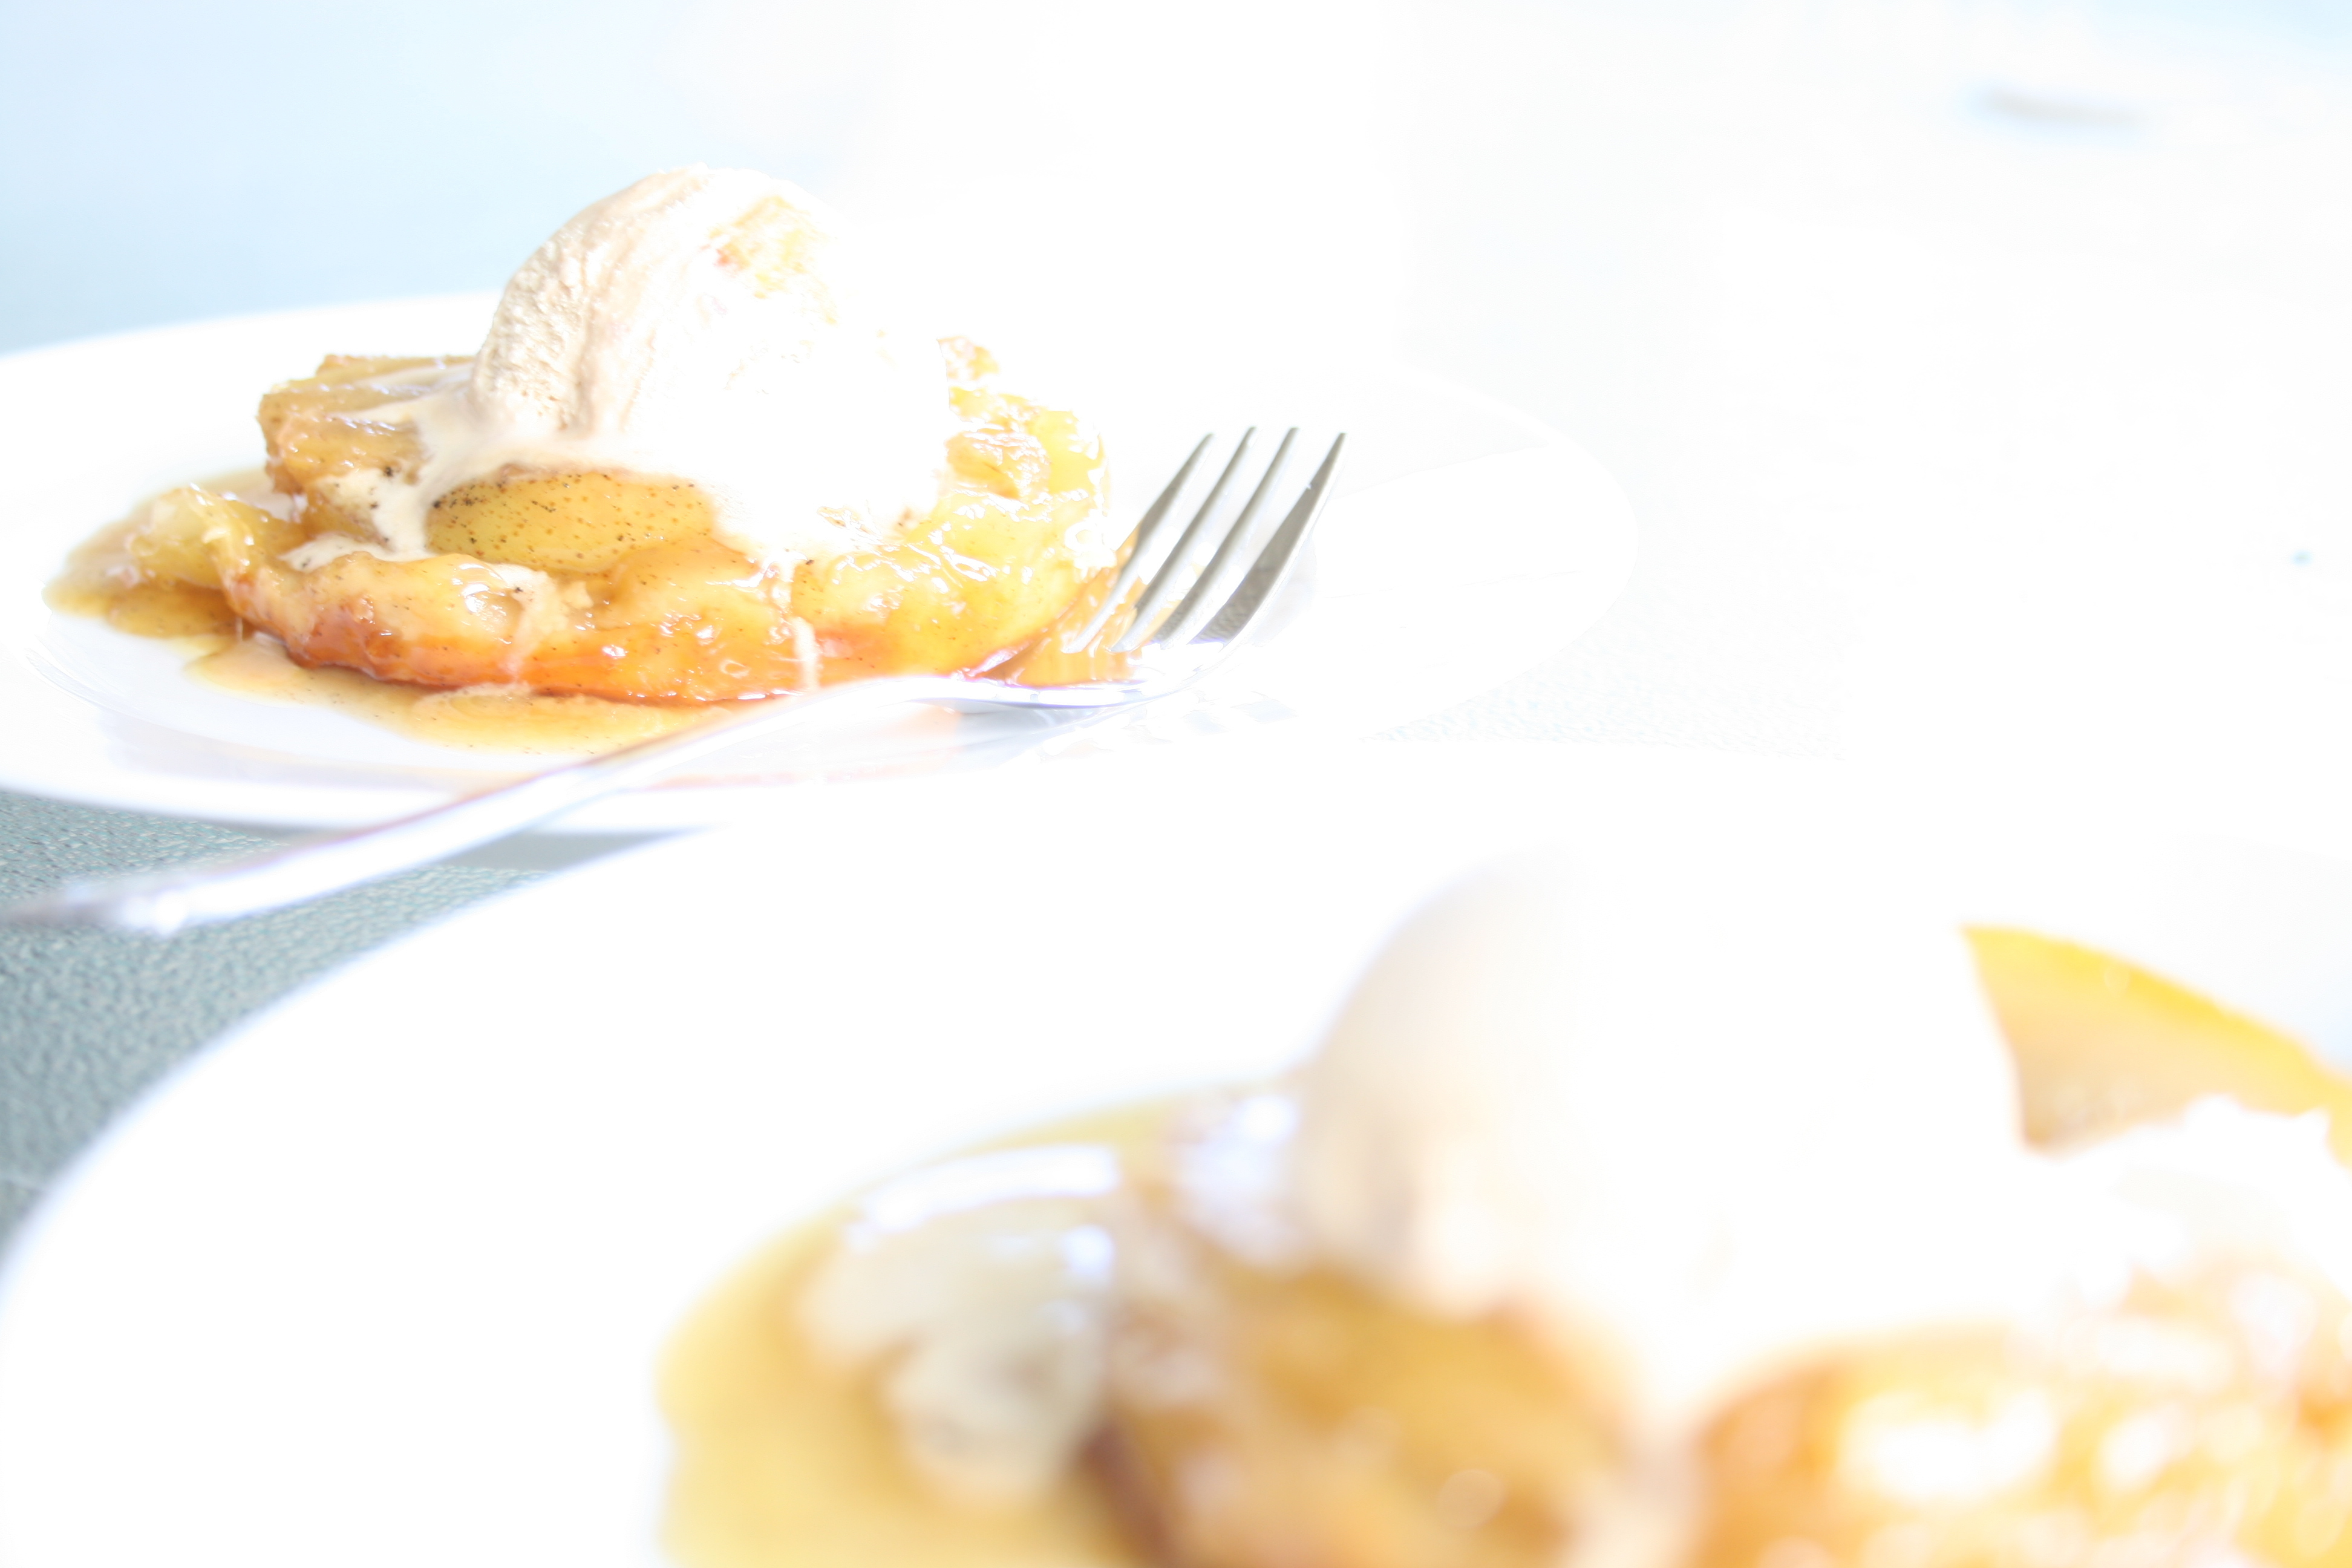 dessert for two: pears and pastry